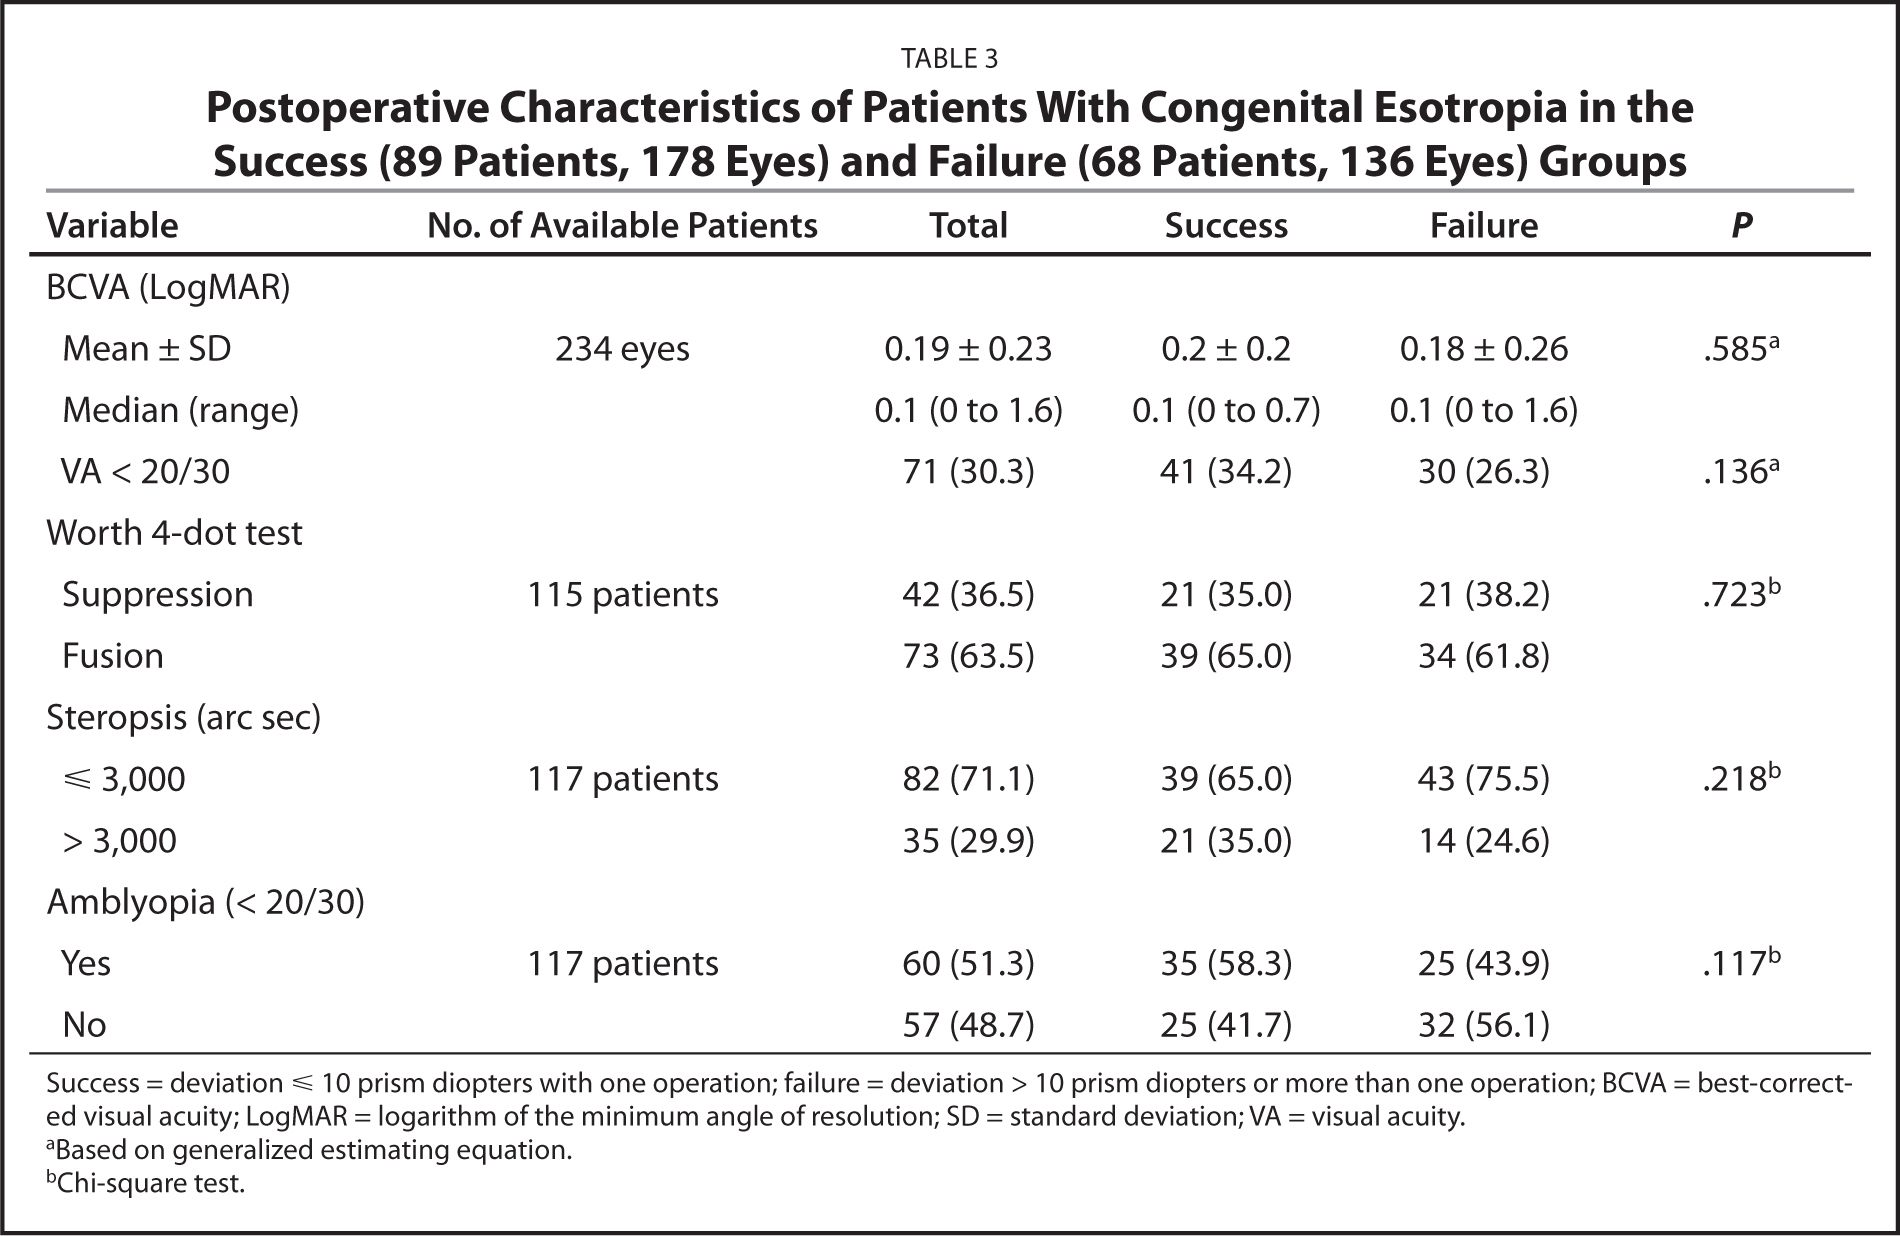 Postoperative Characteristics of Patients With Congenital Esotropia in the Success (89 Patients, 178 Eyes) and Failure (68 Patients, 136 Eyes) Groups